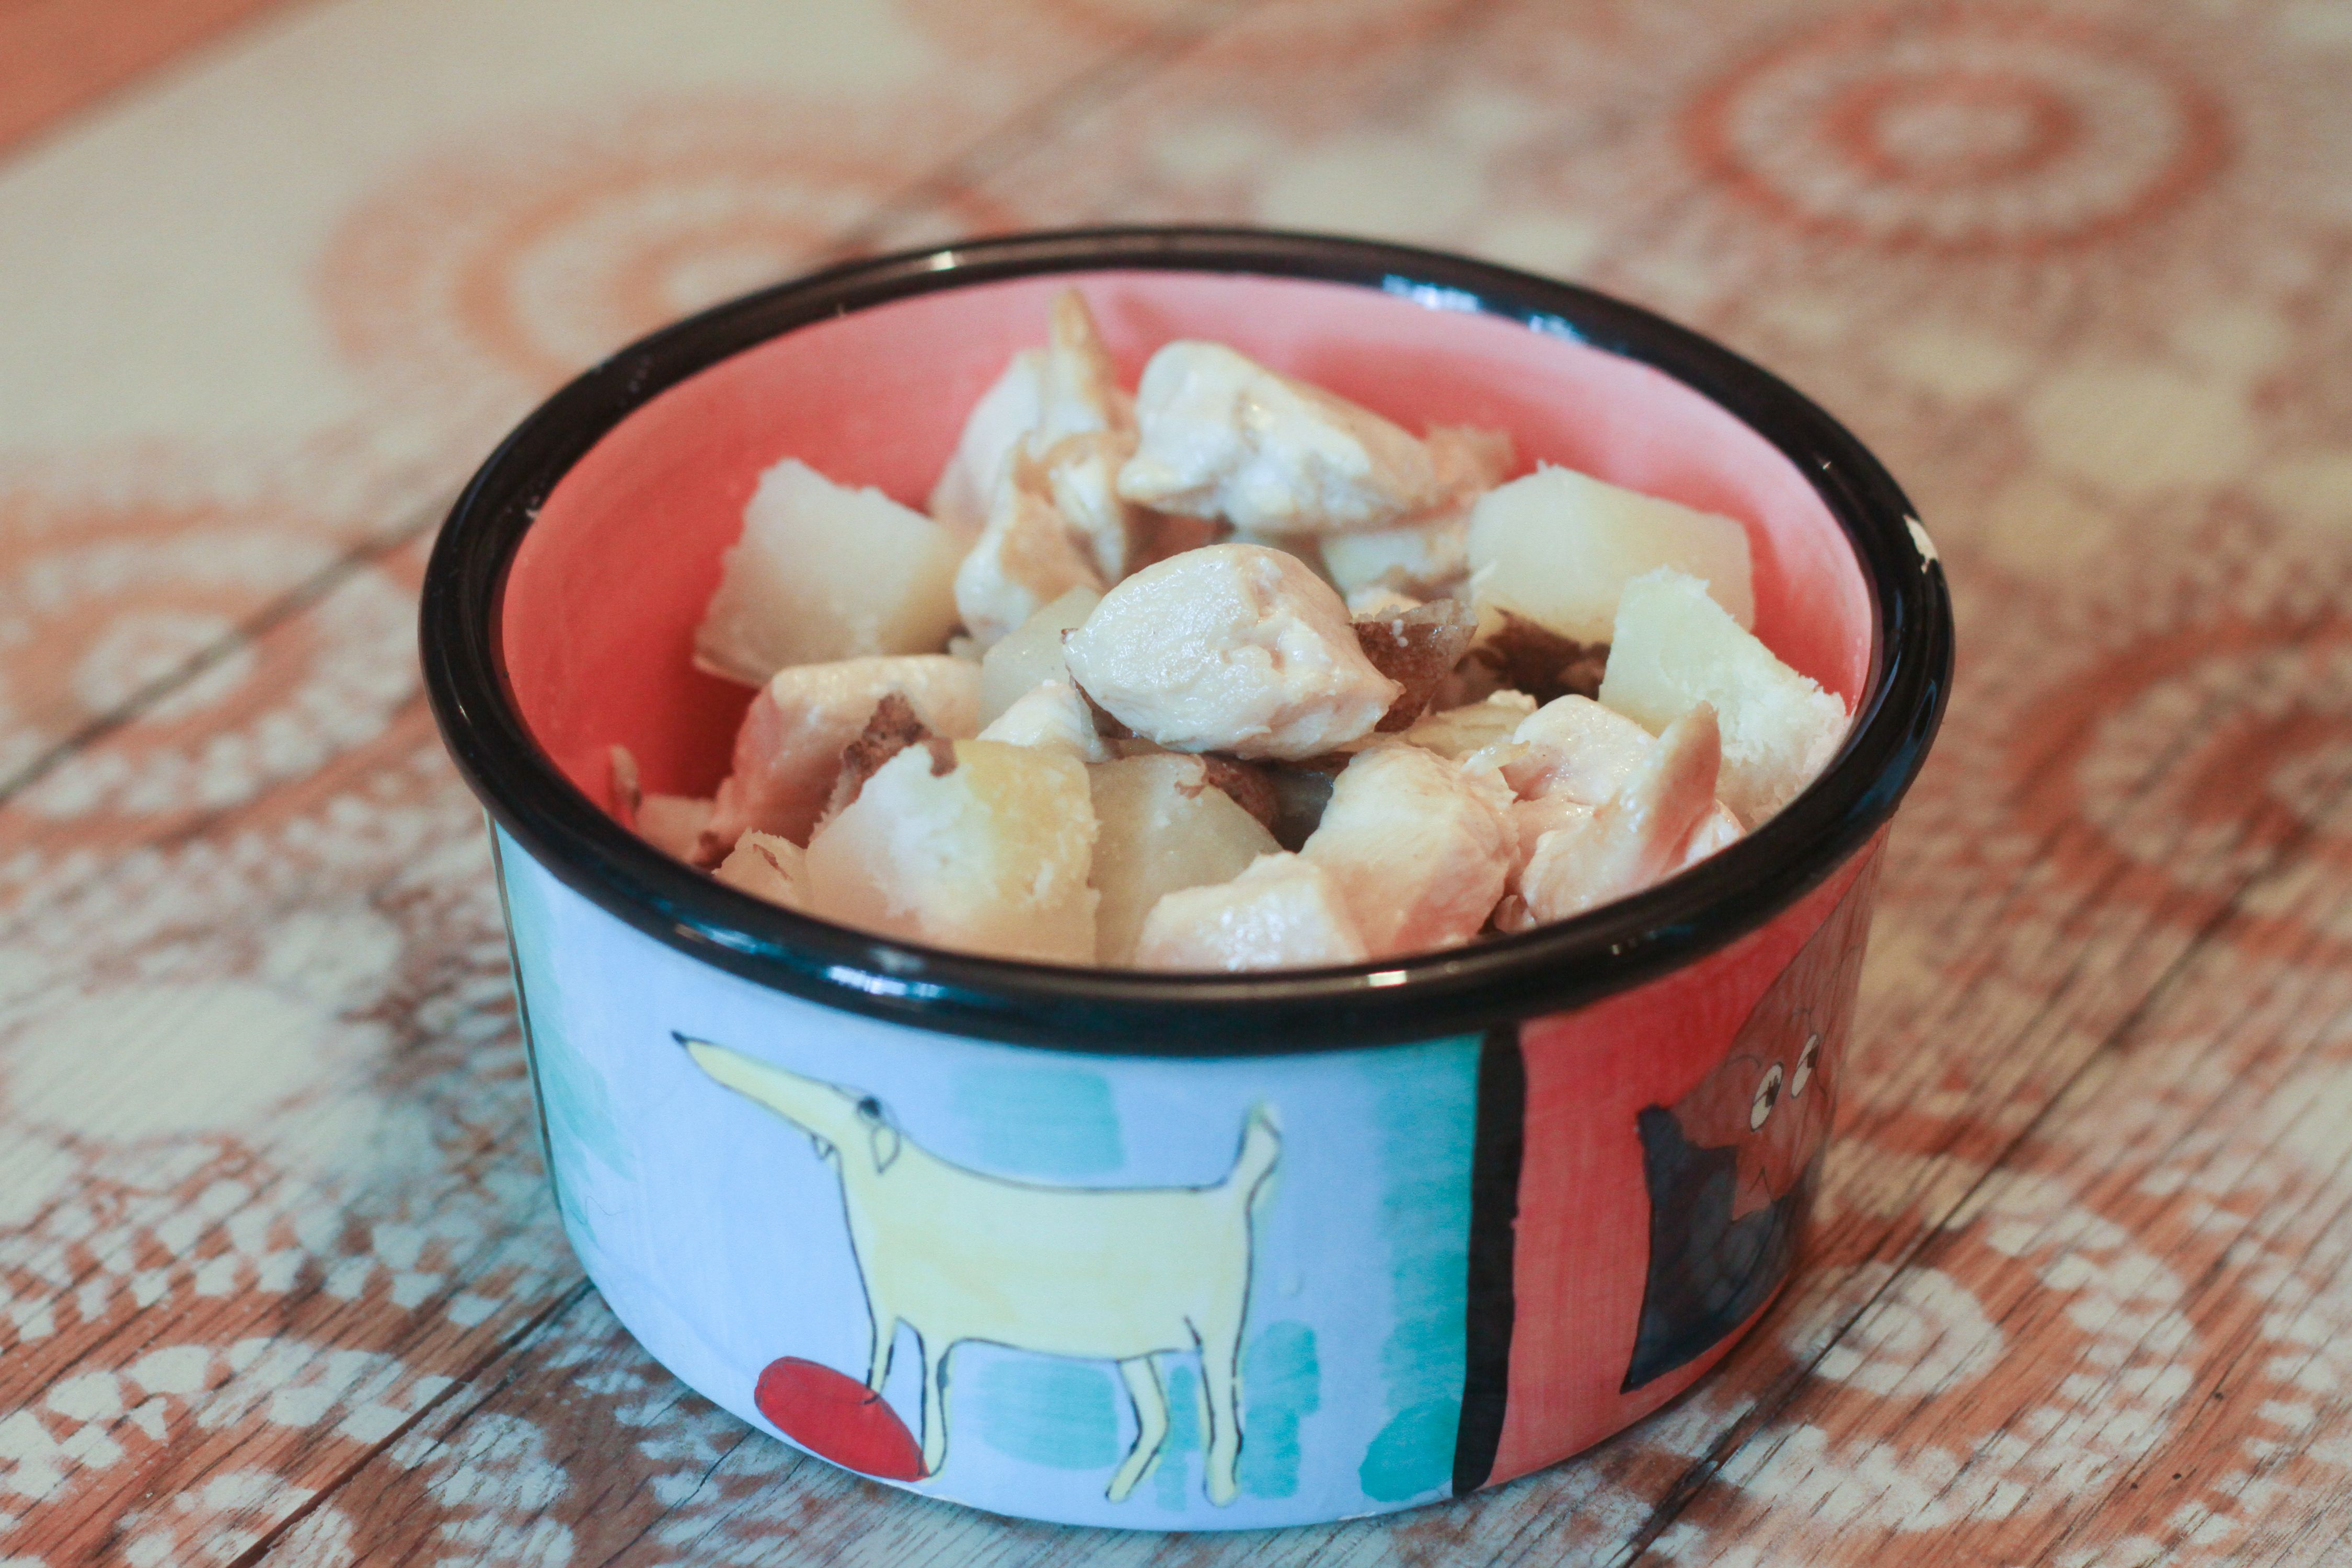 Homemade Dog-Food Recipes for Kidney Failure | Cuteness | Tails that .